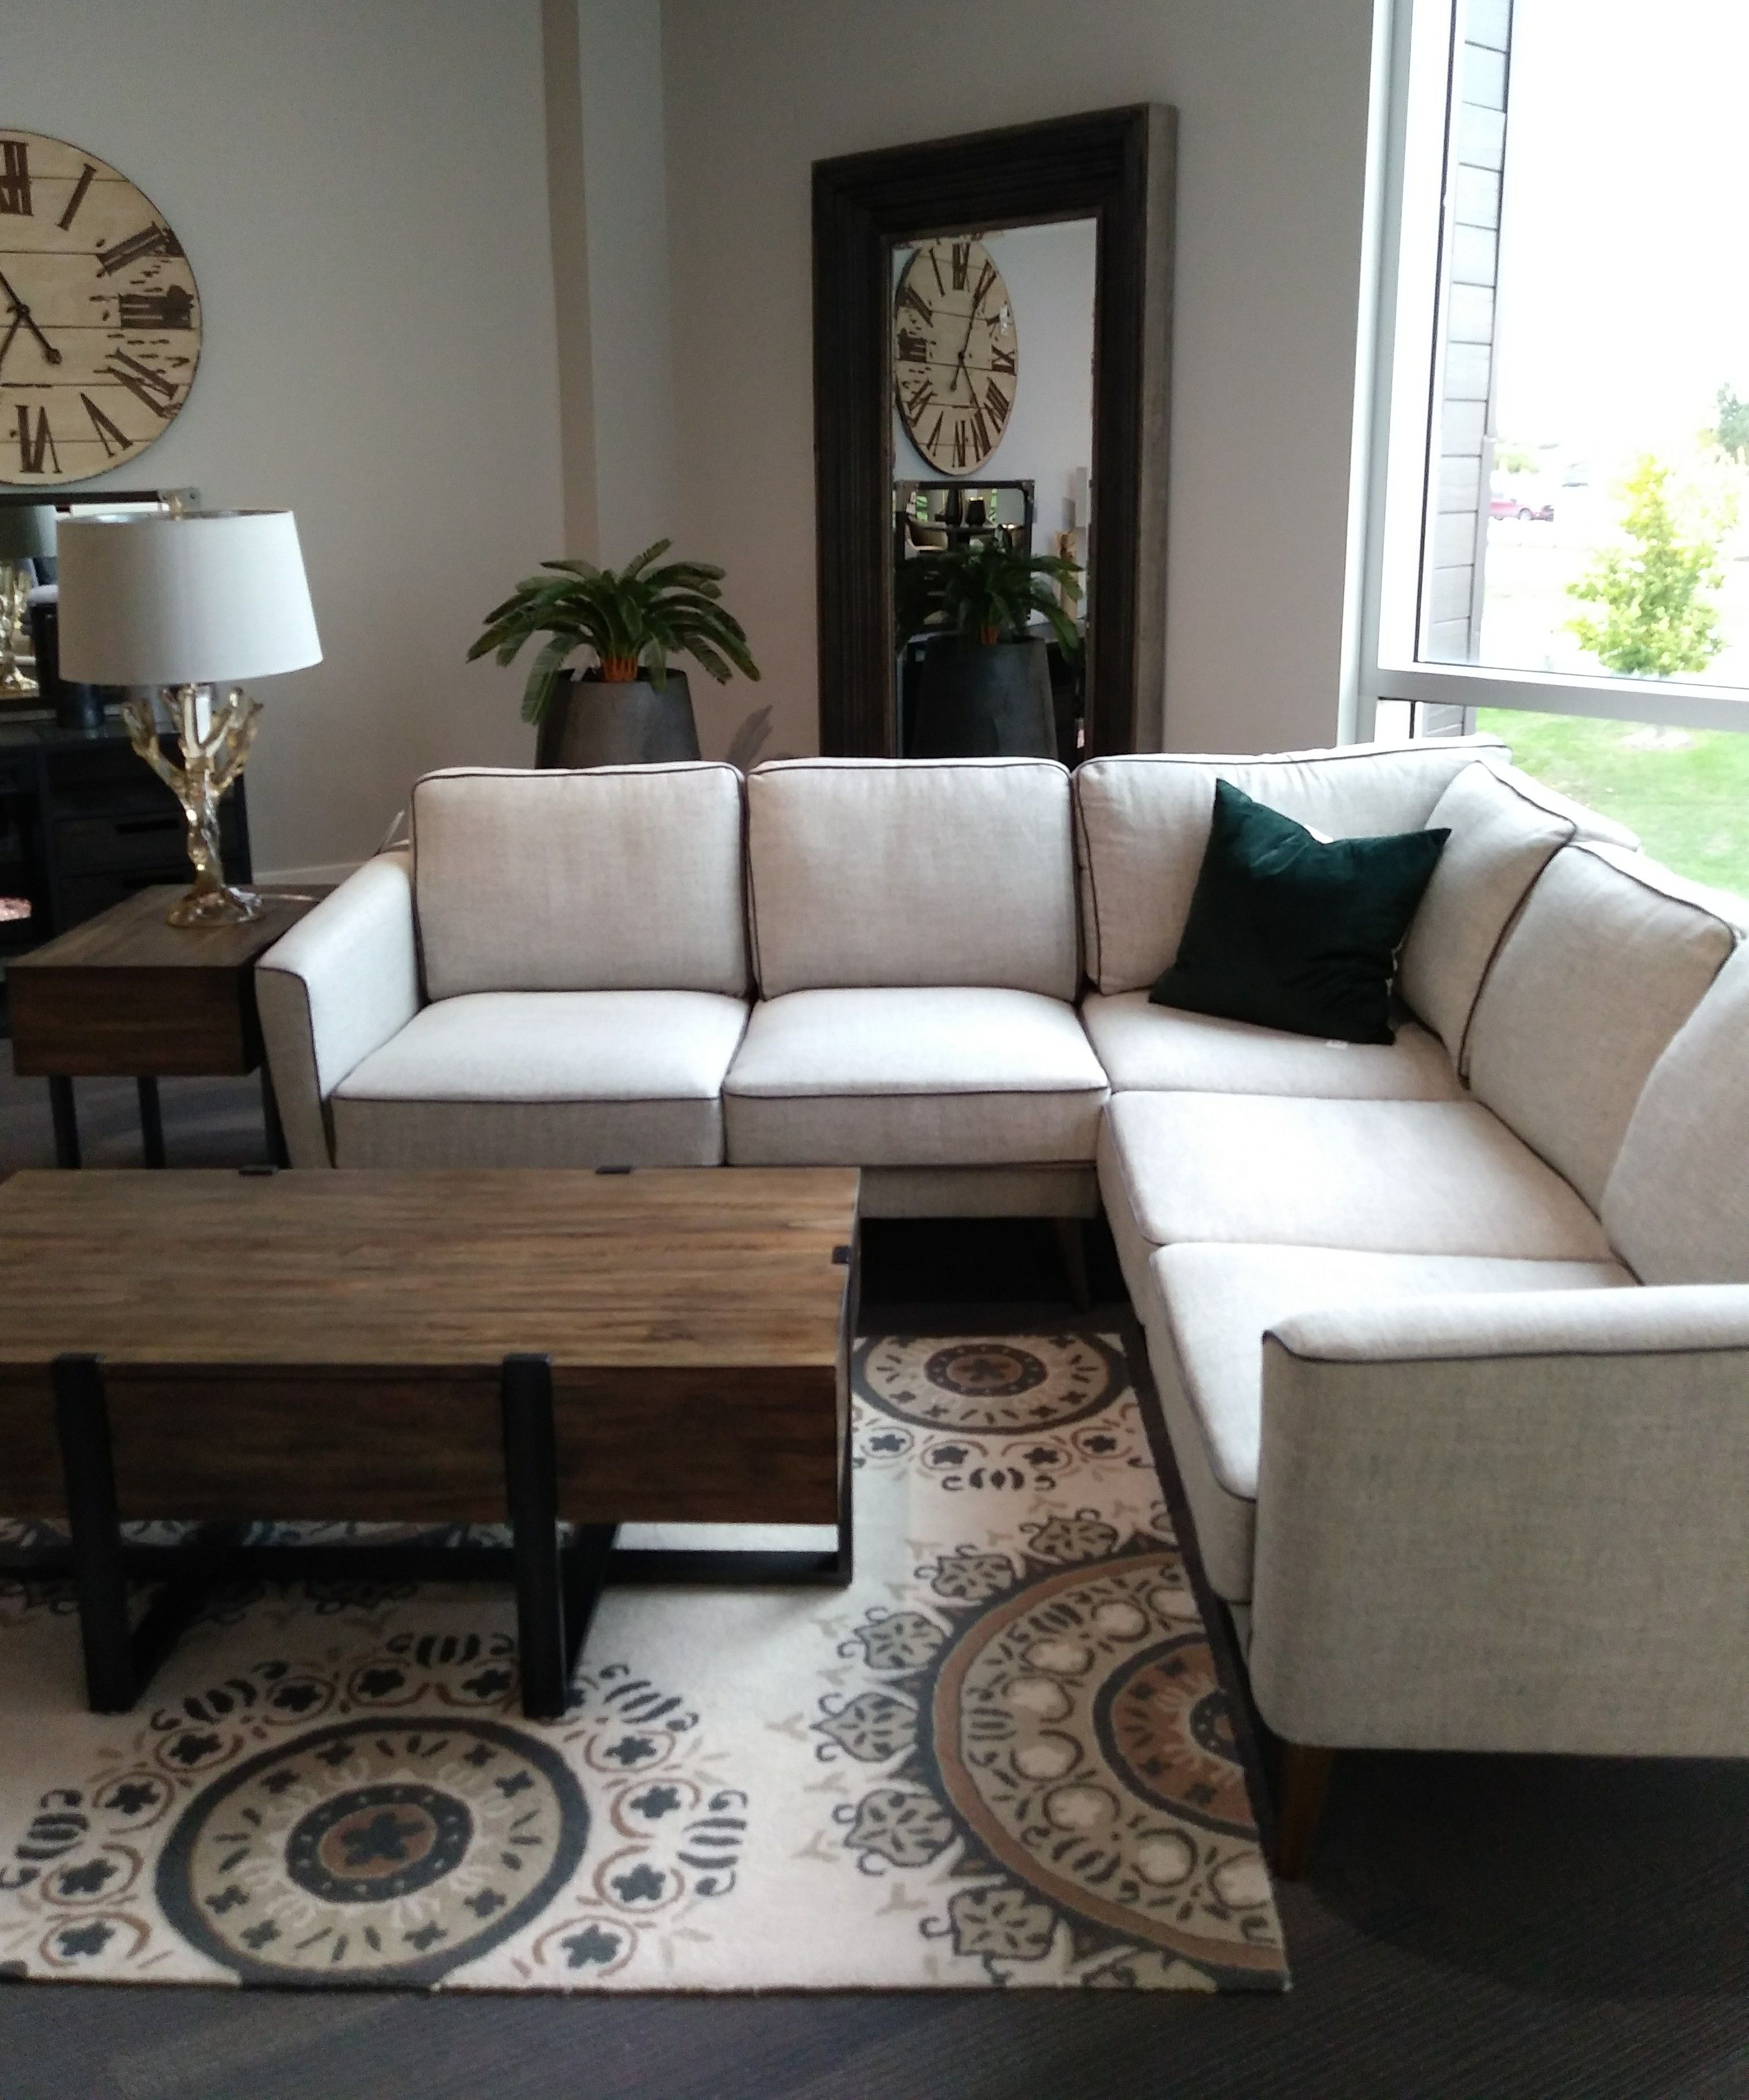 Soiree Tele En Vue Home Decor Furniture Sectional Couch